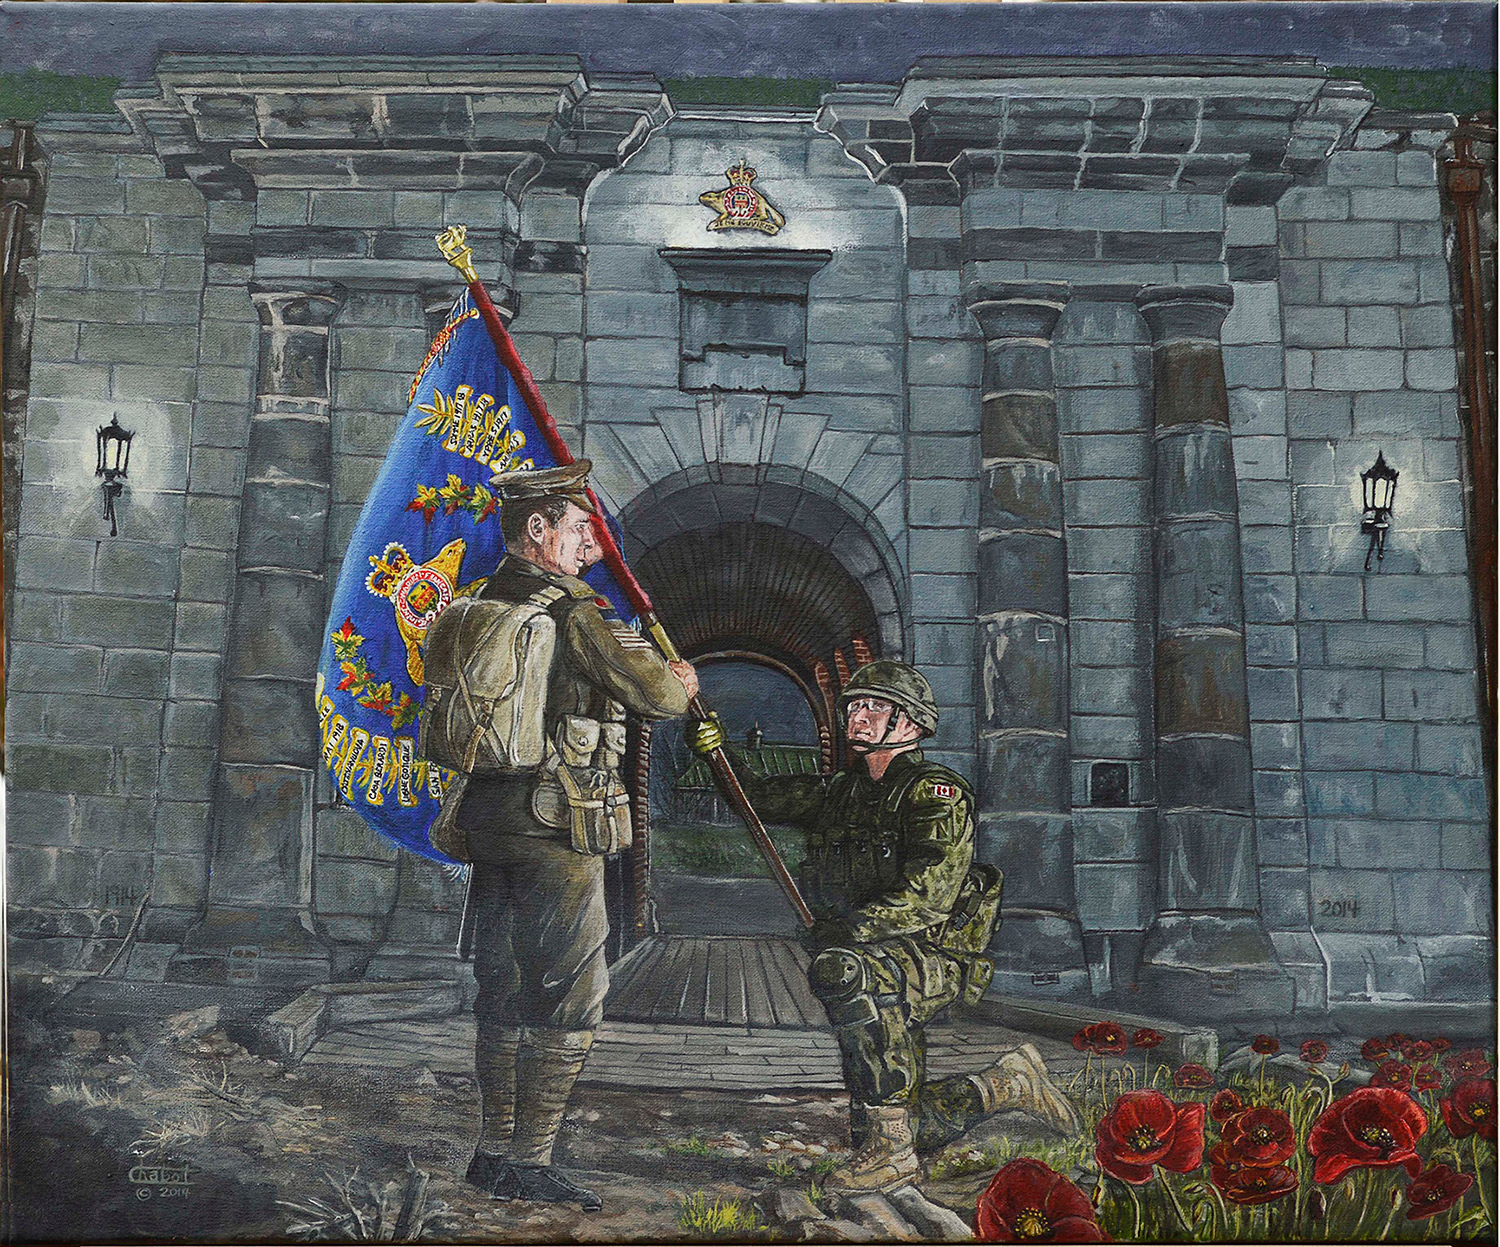 A painting of two soldiers holding a Royal 22e Régiment flag